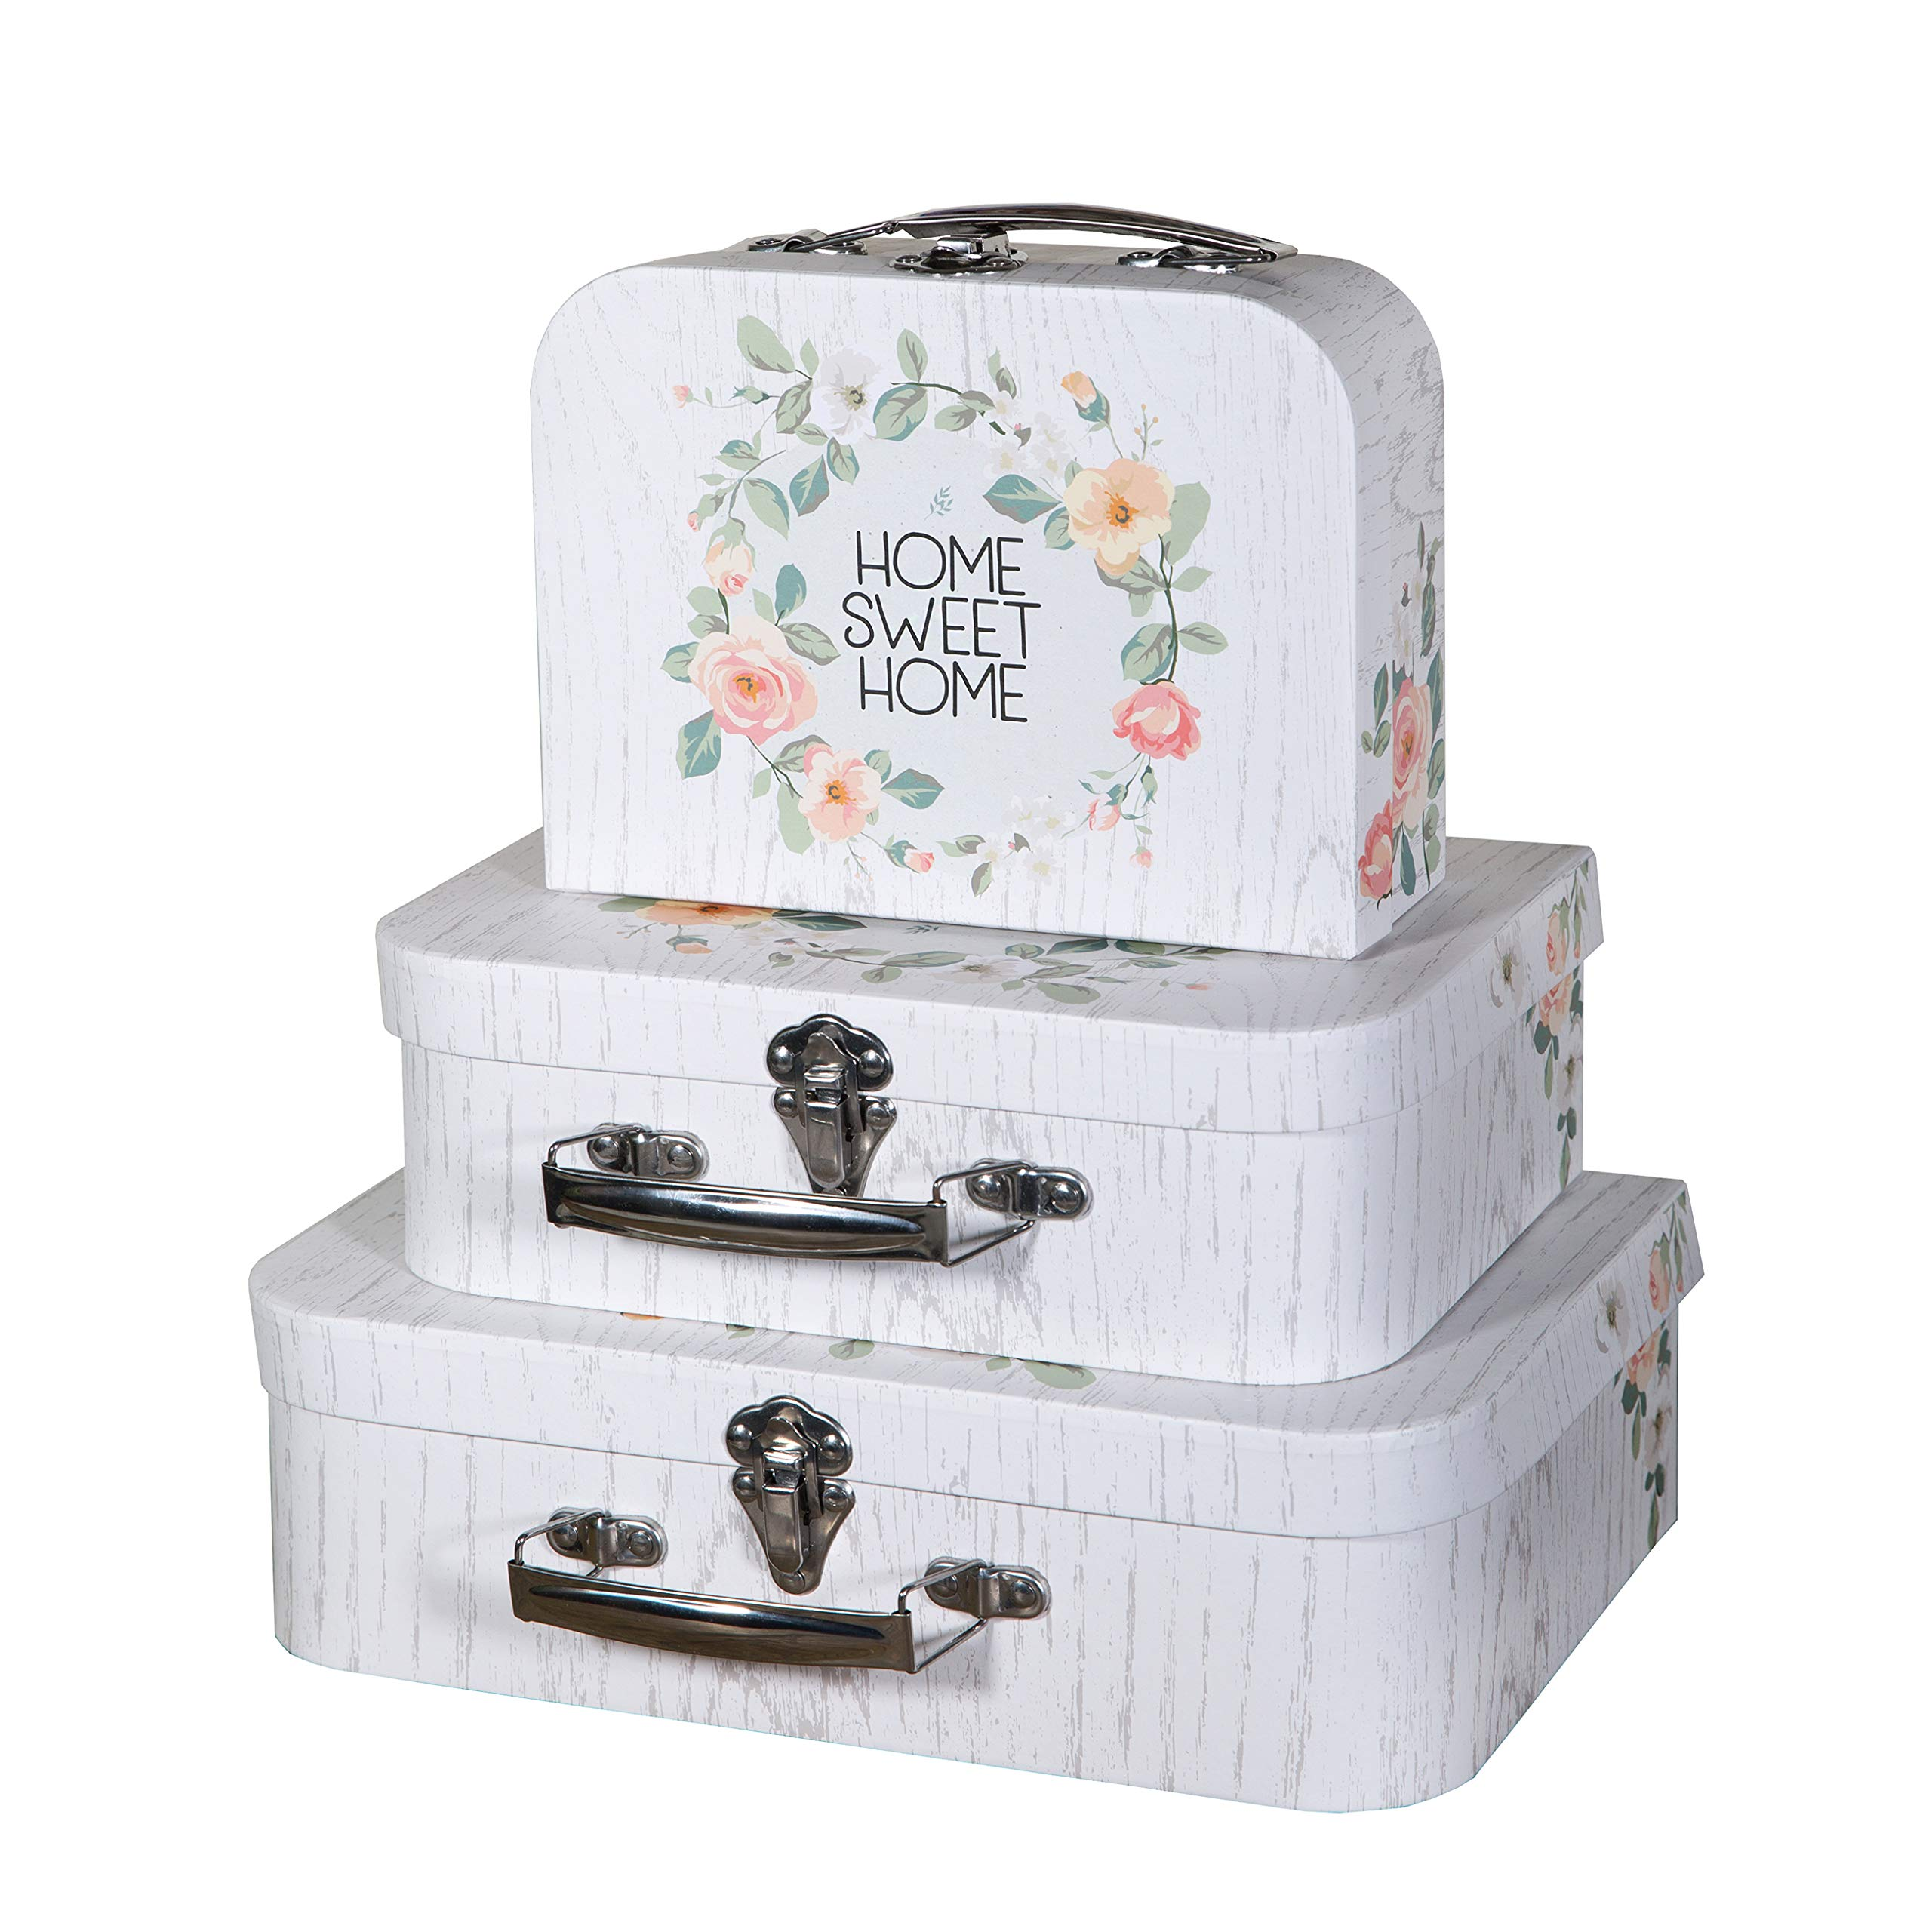 Soul & Lane Decorative Storage Cardboard Suitcase Boxes (Set of 3) | Home Sweet Home Pattern | Farmhouse Paperboard Boxes with Lids